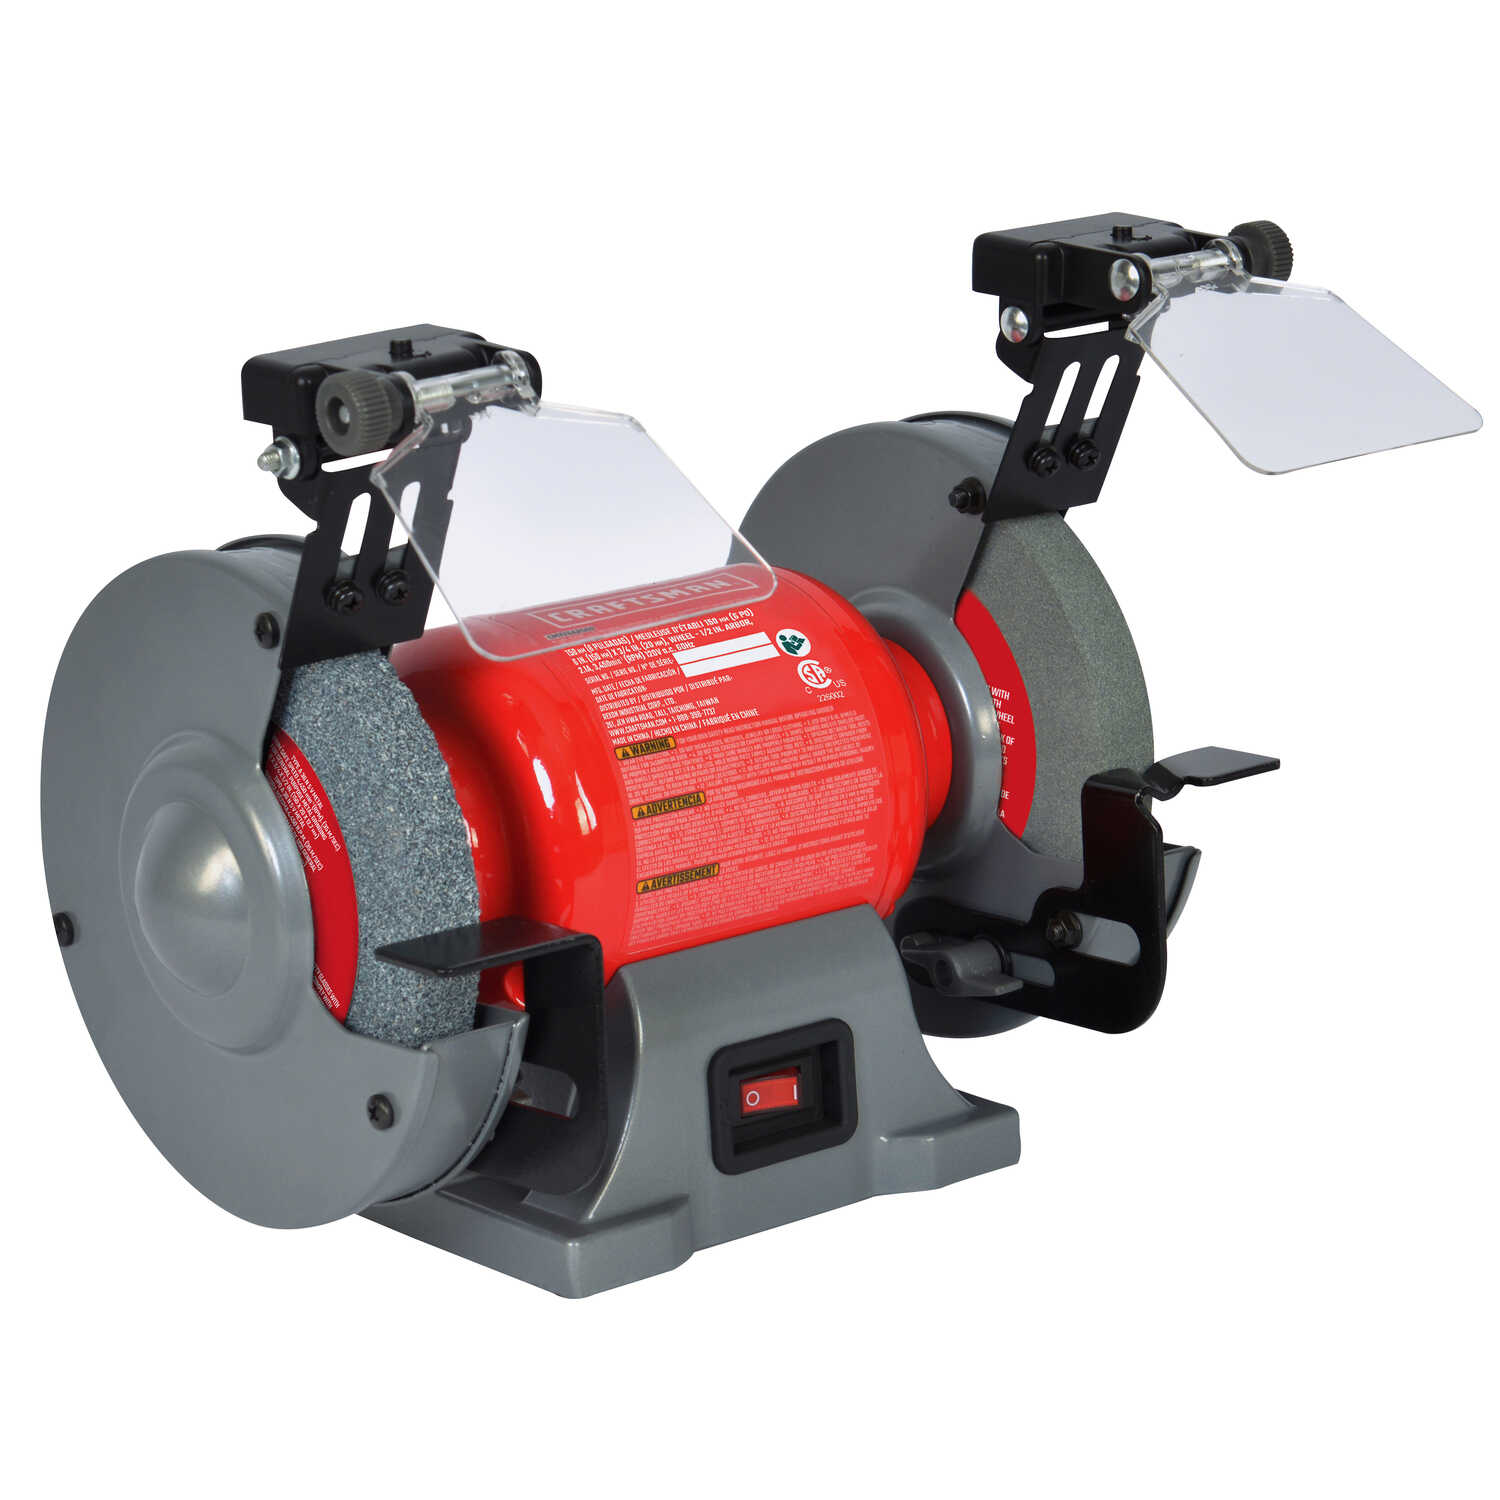 Enjoyable Craftsman 6 In Bench Grinder With Lamp 2 1 Amps 3450 Rpm Ibusinesslaw Wood Chair Design Ideas Ibusinesslaworg